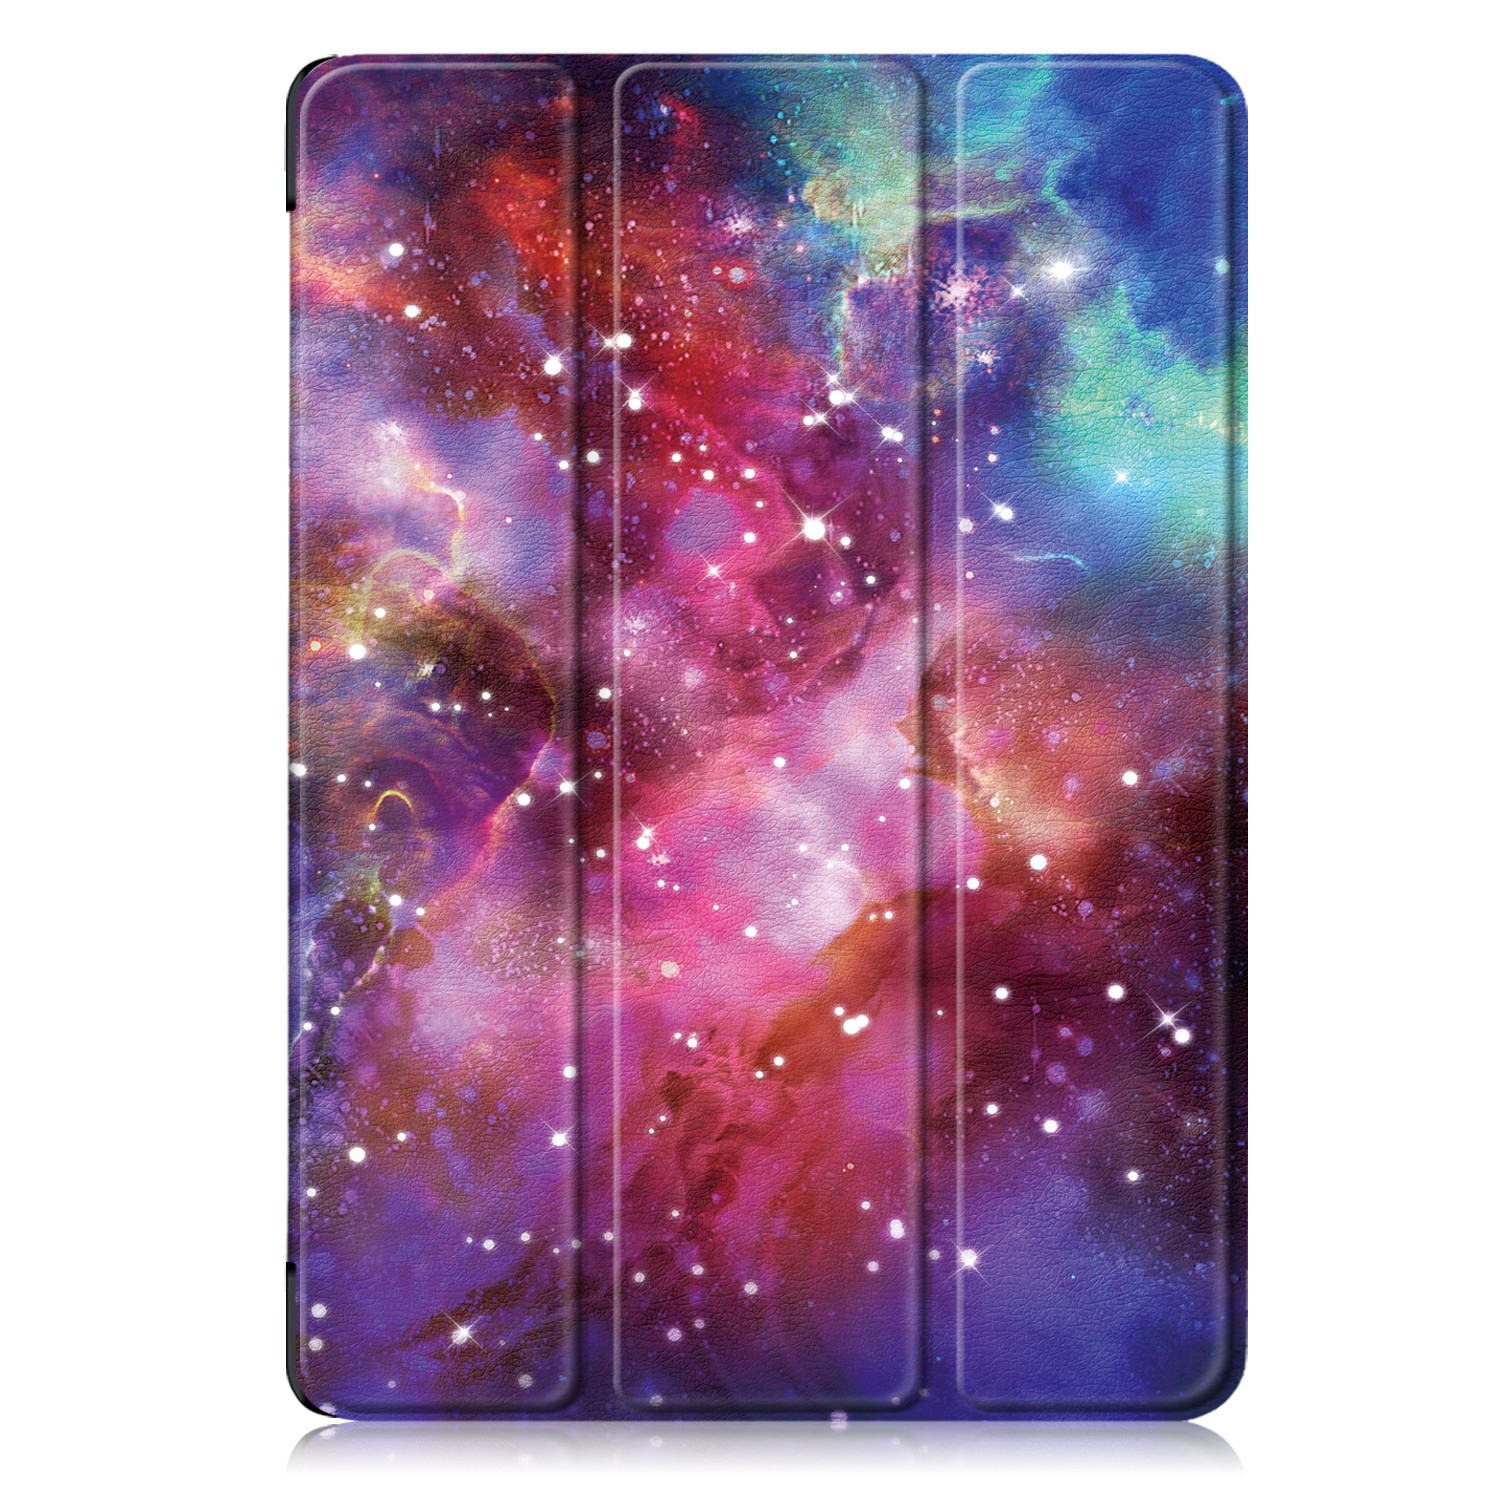 Galaxy White Tablet Case Funda For IPad 10 2 Inch 2020 with Pencil Holder Magnetic Folding Stand Smart